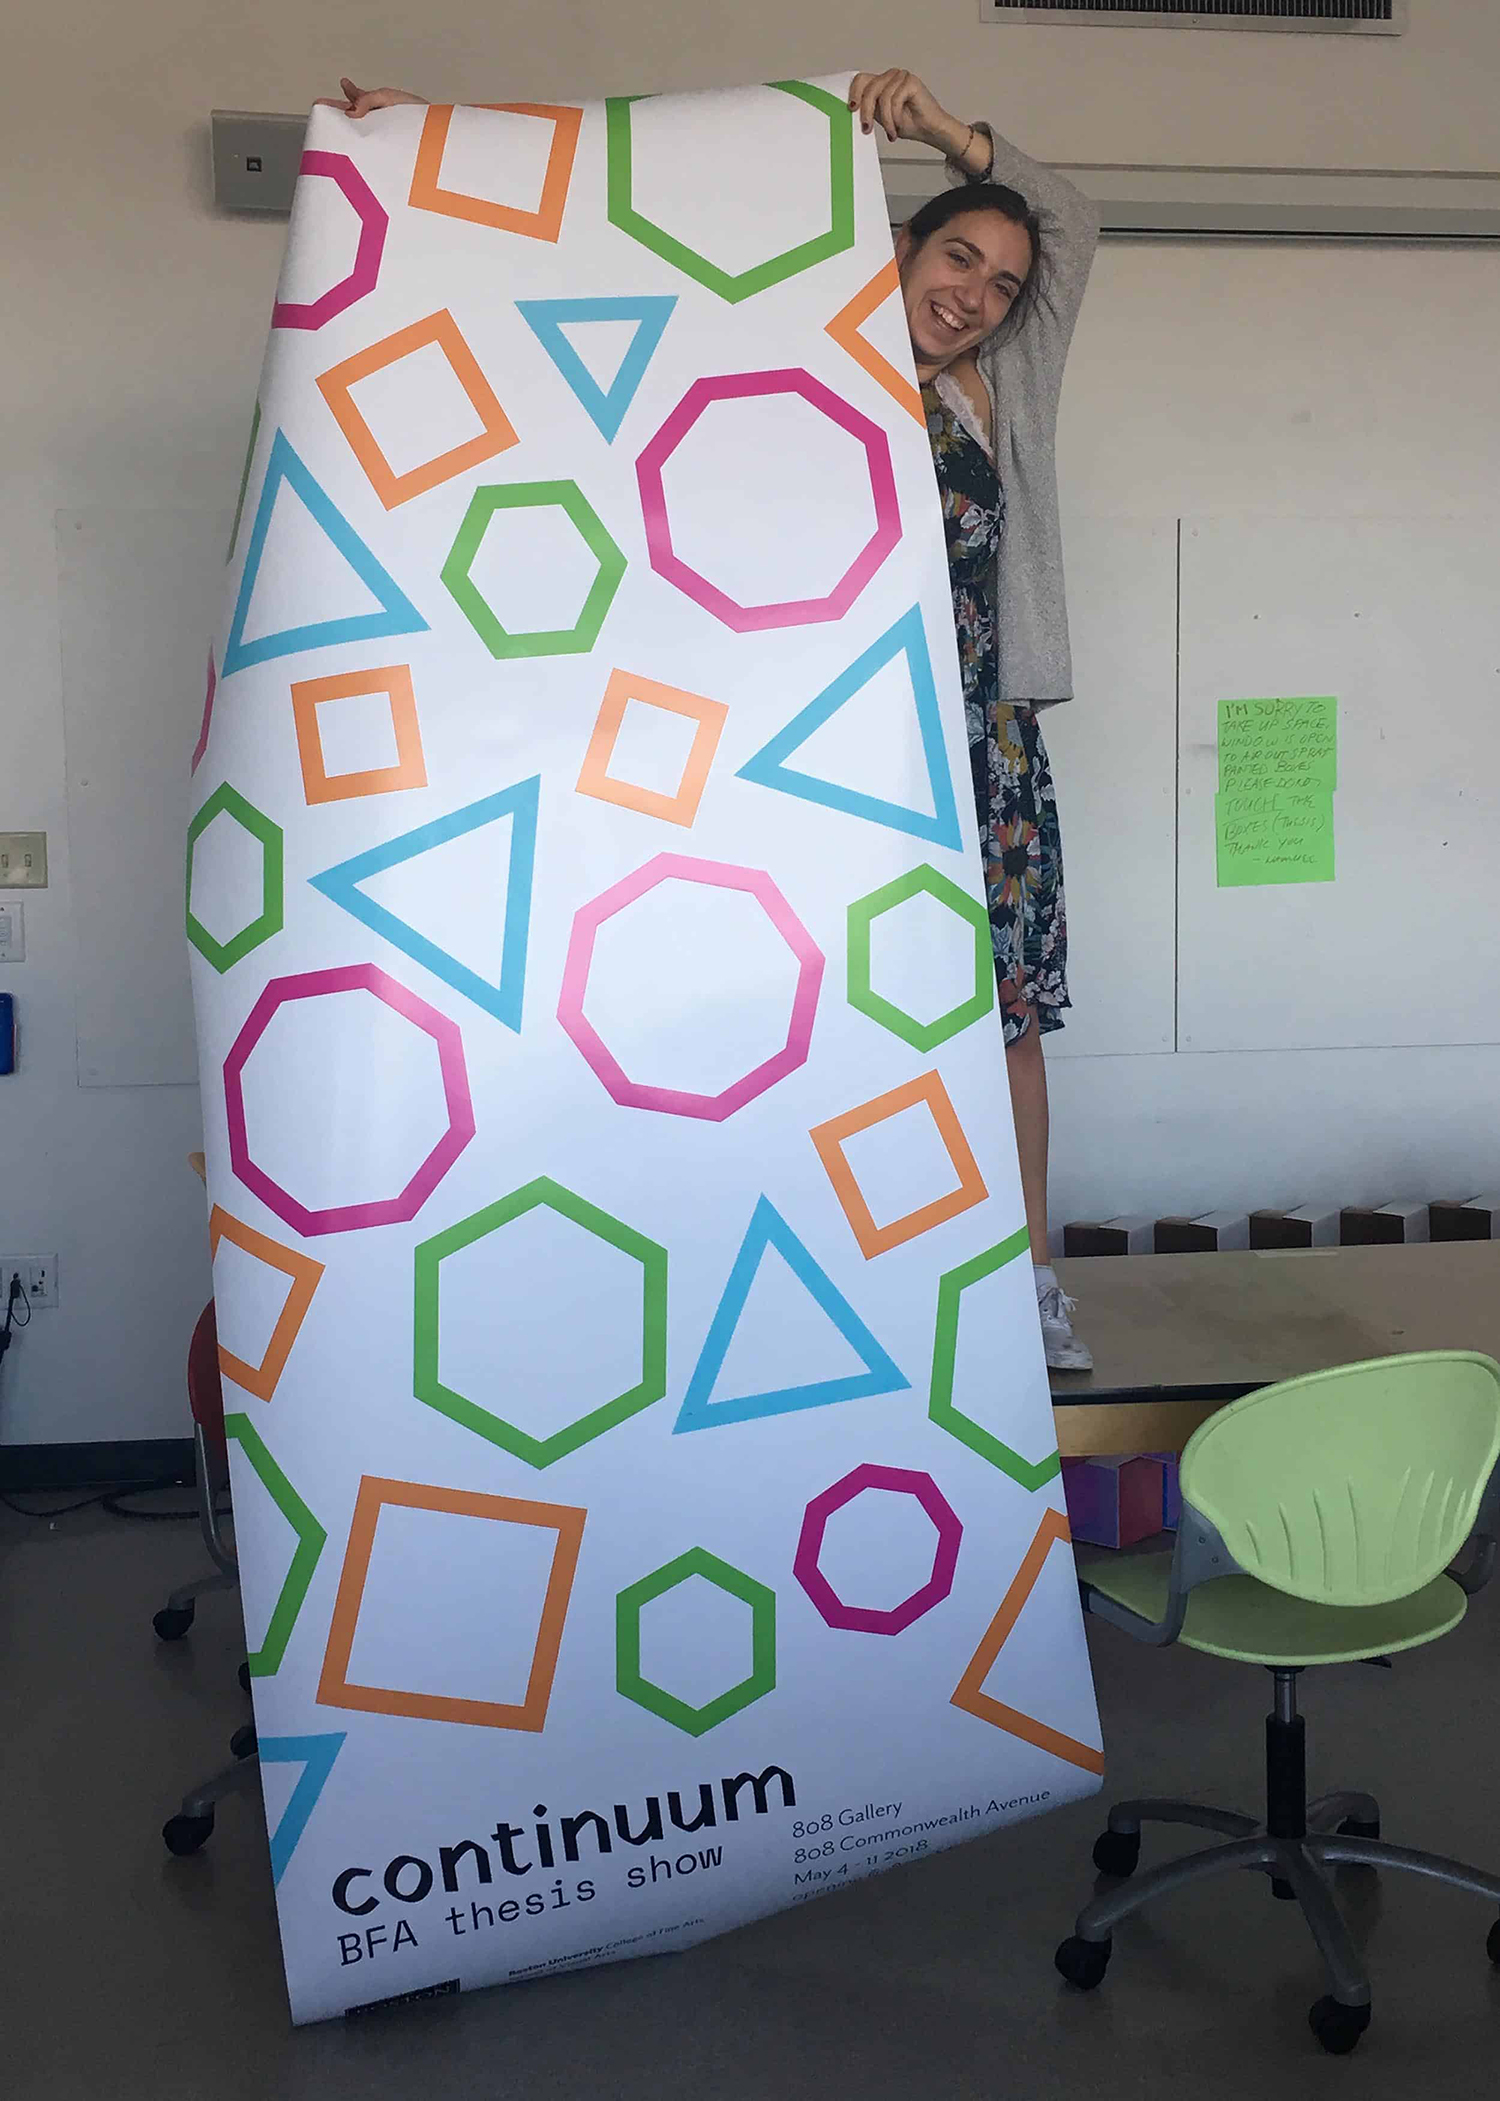 olivia standing on a table and holding a banner